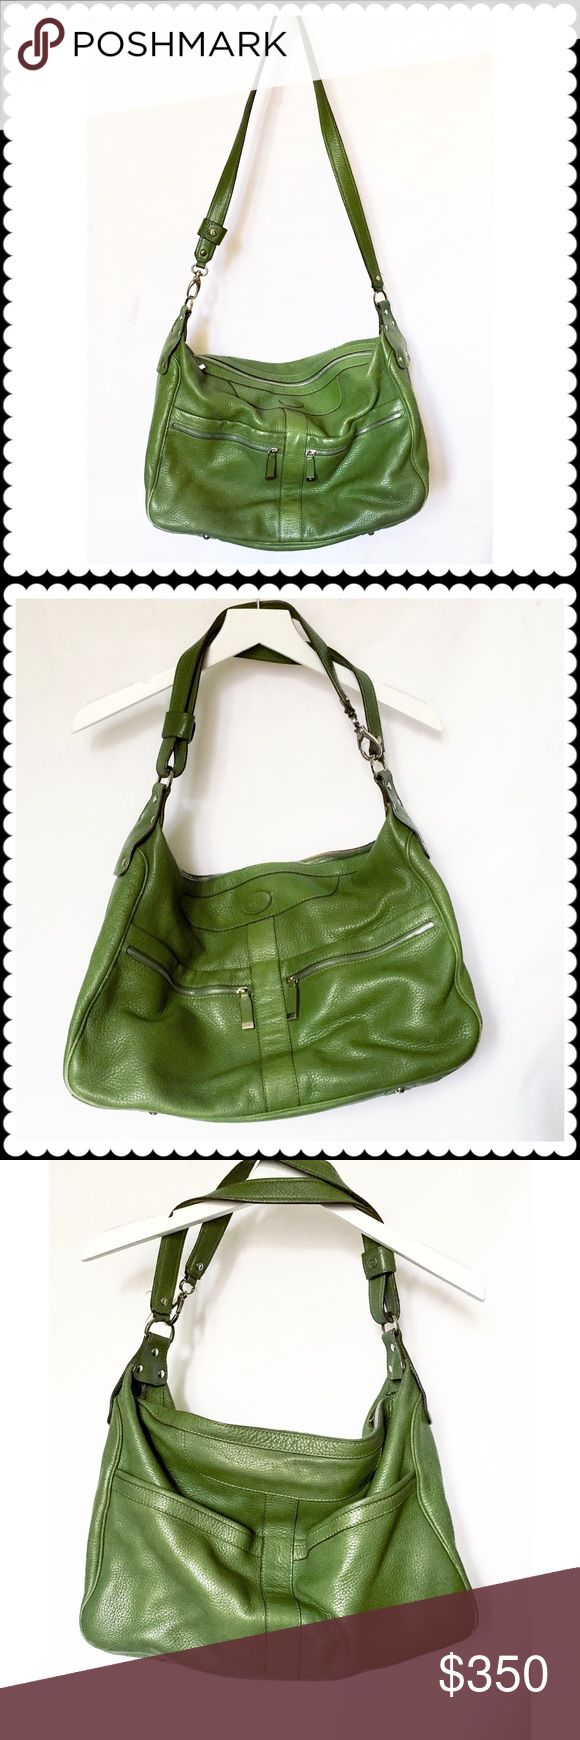 """Tod's large shoulder bag in green tumbled leather Tod's large green shoulder bag in tumbled leather. Strap can be used as long or short as the photos. Canvas lined. Two zipper pockets in front and two open pockets in the back. Also one zipper pocket and two open pockets inside. Gently used with some scuffing on the bottom corners as photo. Sizes are approximately 12"""" high/16.5"""" wide/6"""" thick. shoulder strap Is about 34.5""""long. The strap metal clip got broken and replaced with a stronger one…"""